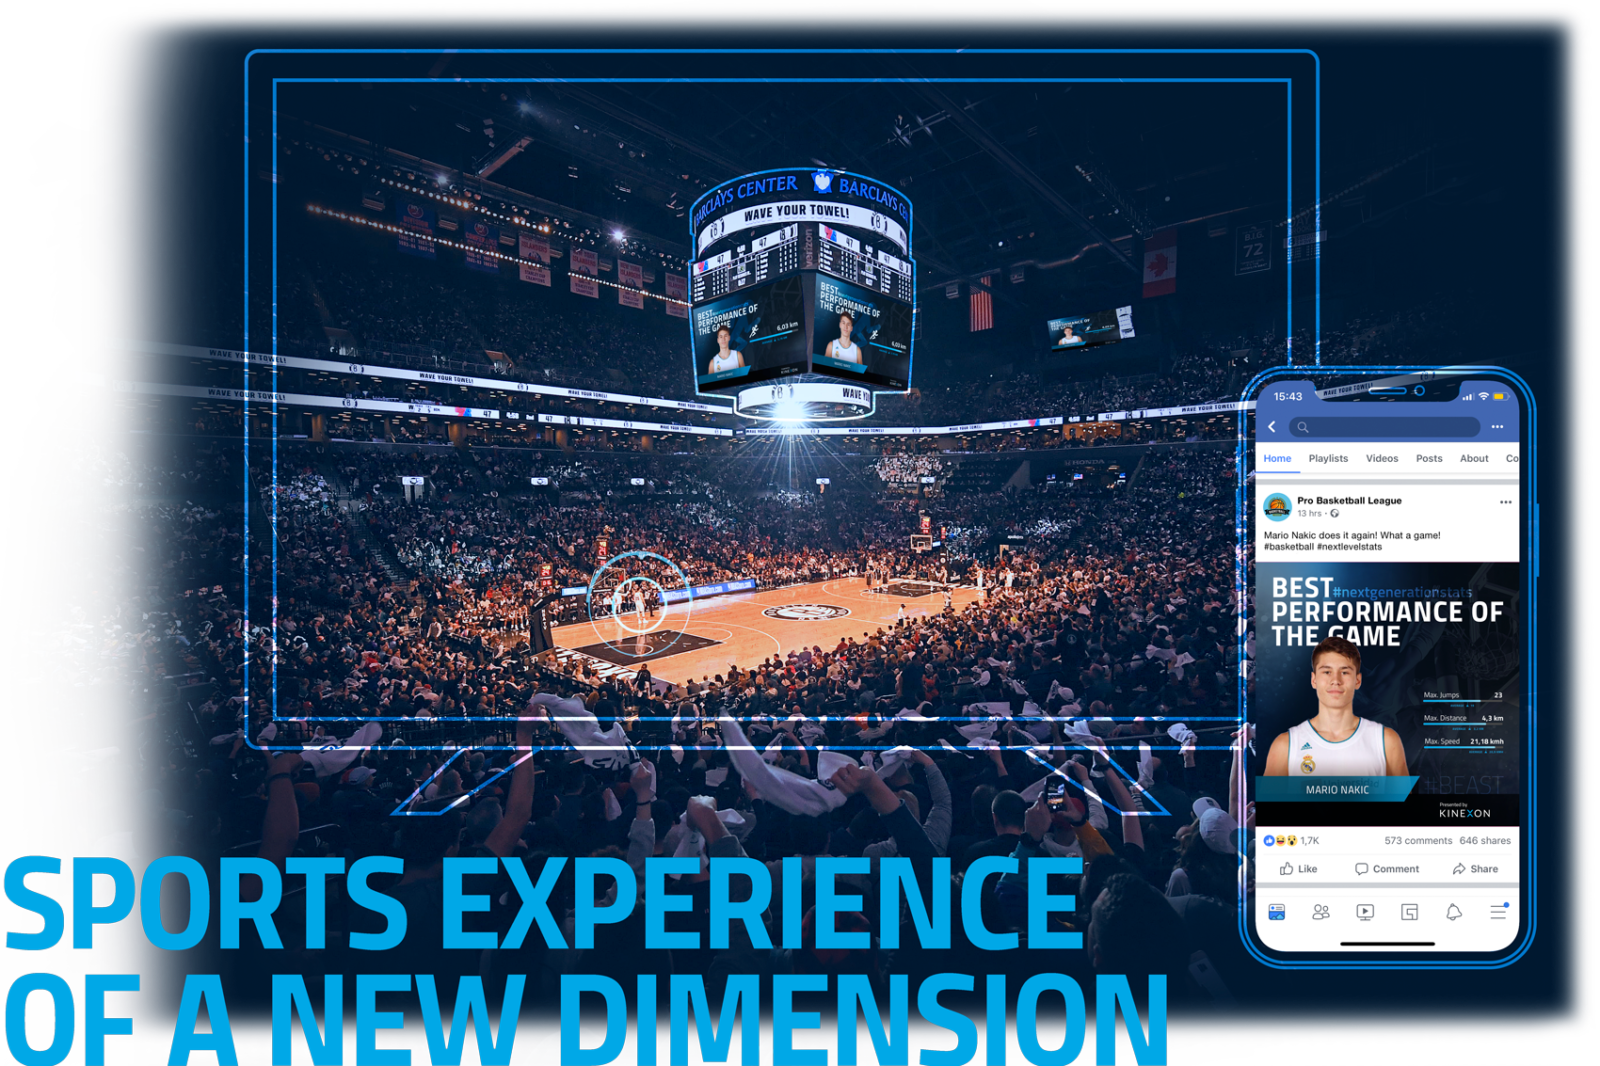 Sports Experience of a new dimension